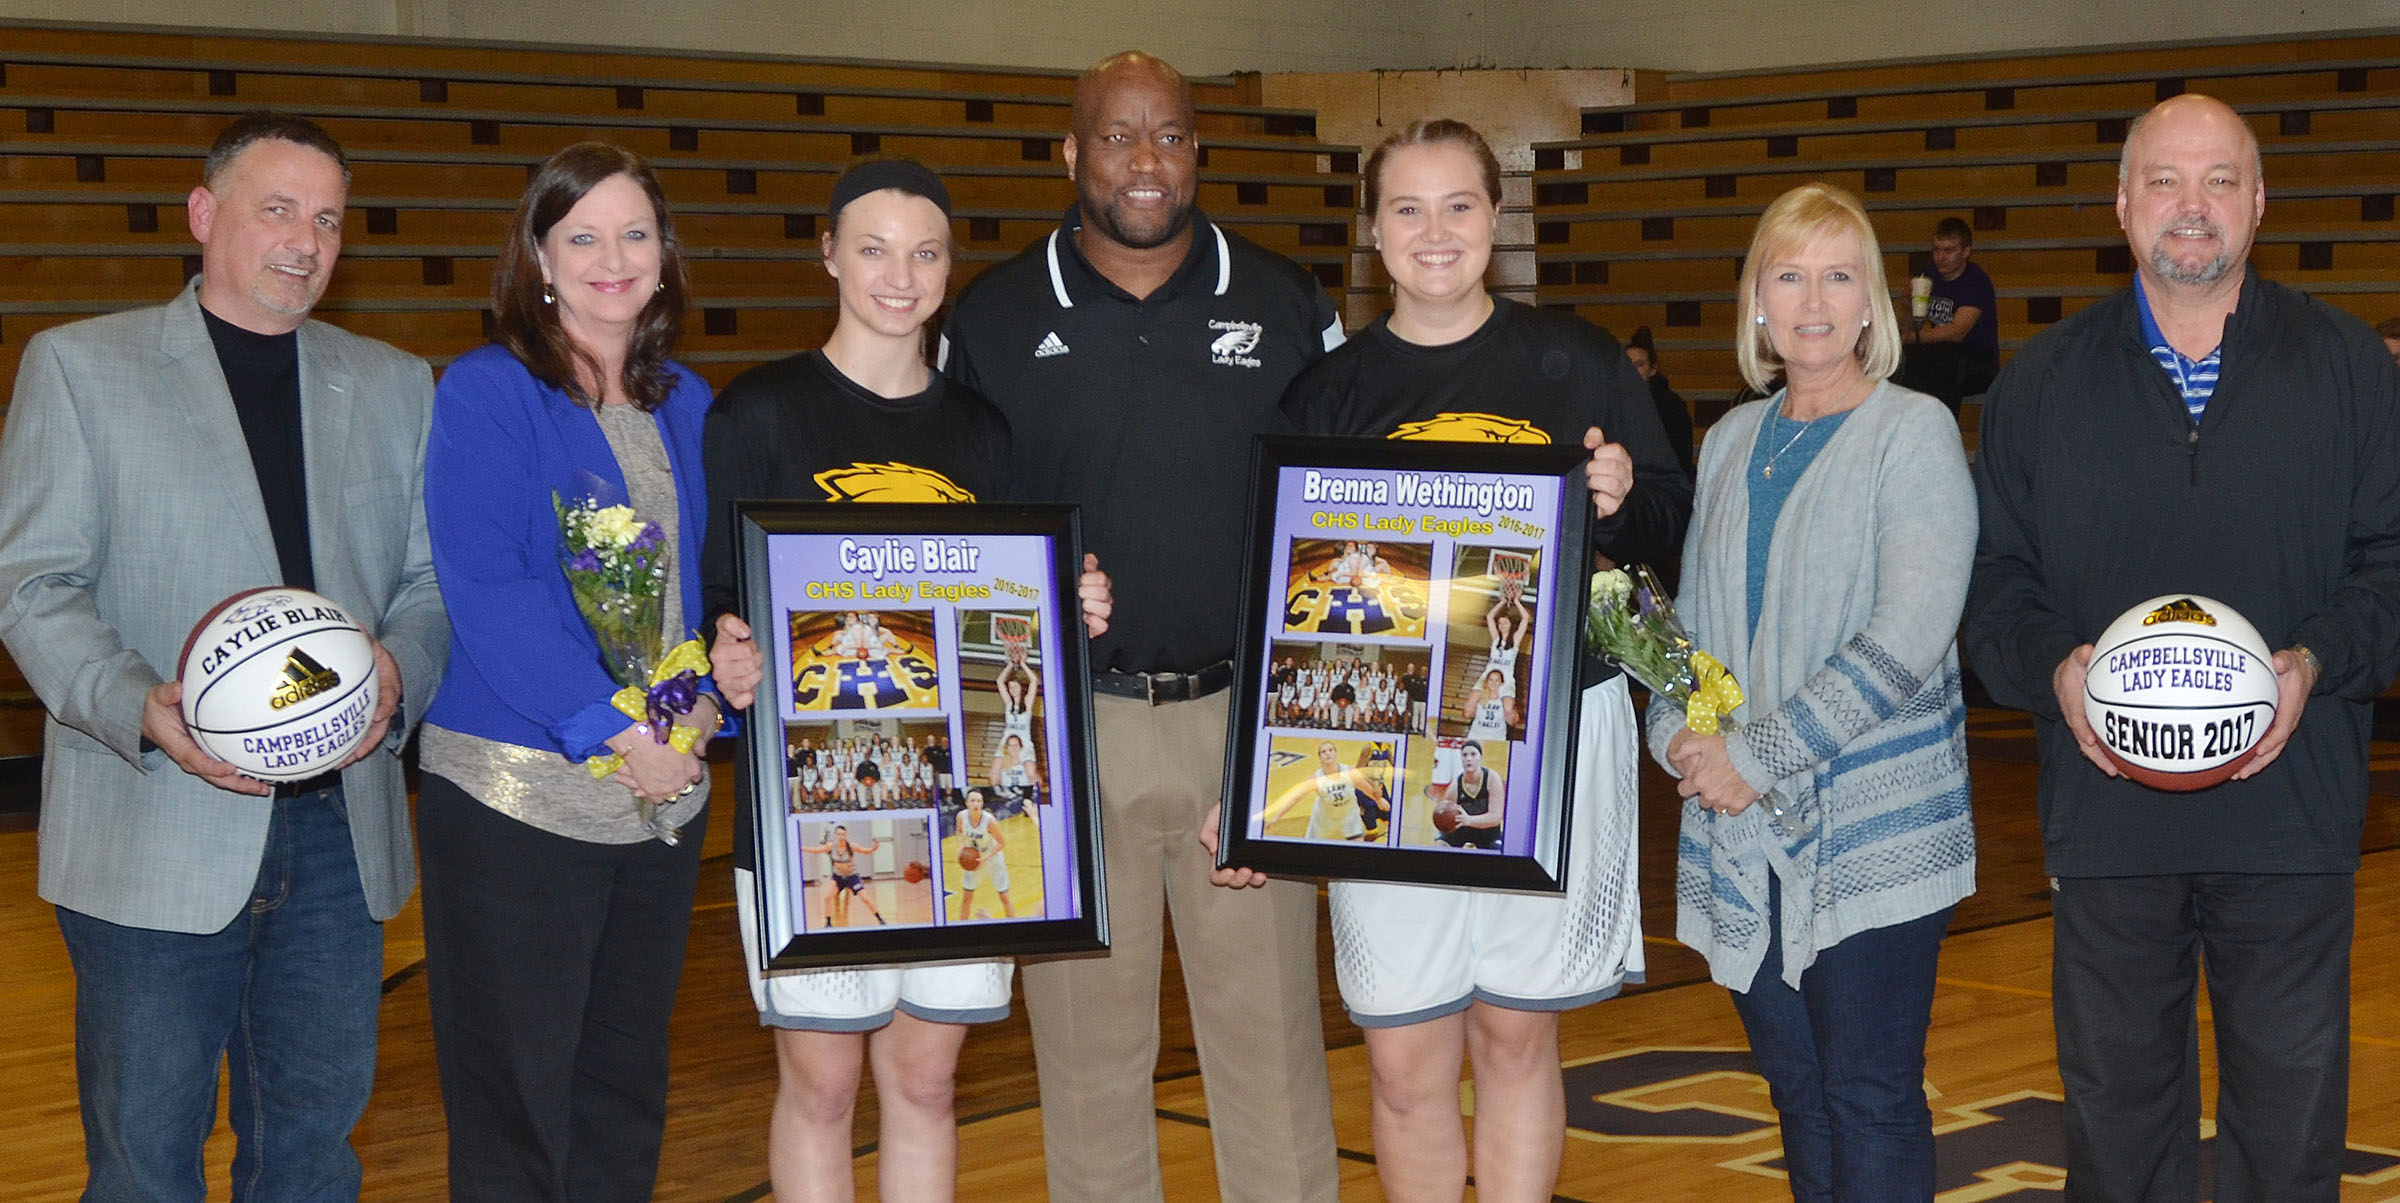 CHS girls' basketball senior players Caylie Blair and Brenna Wethington are honored. From left are Caylie's parents Bryan Blair and Terri Slinker, Caylie, head coach Anthony Epps, Brenna and her parents, Sheila and John Wethington.